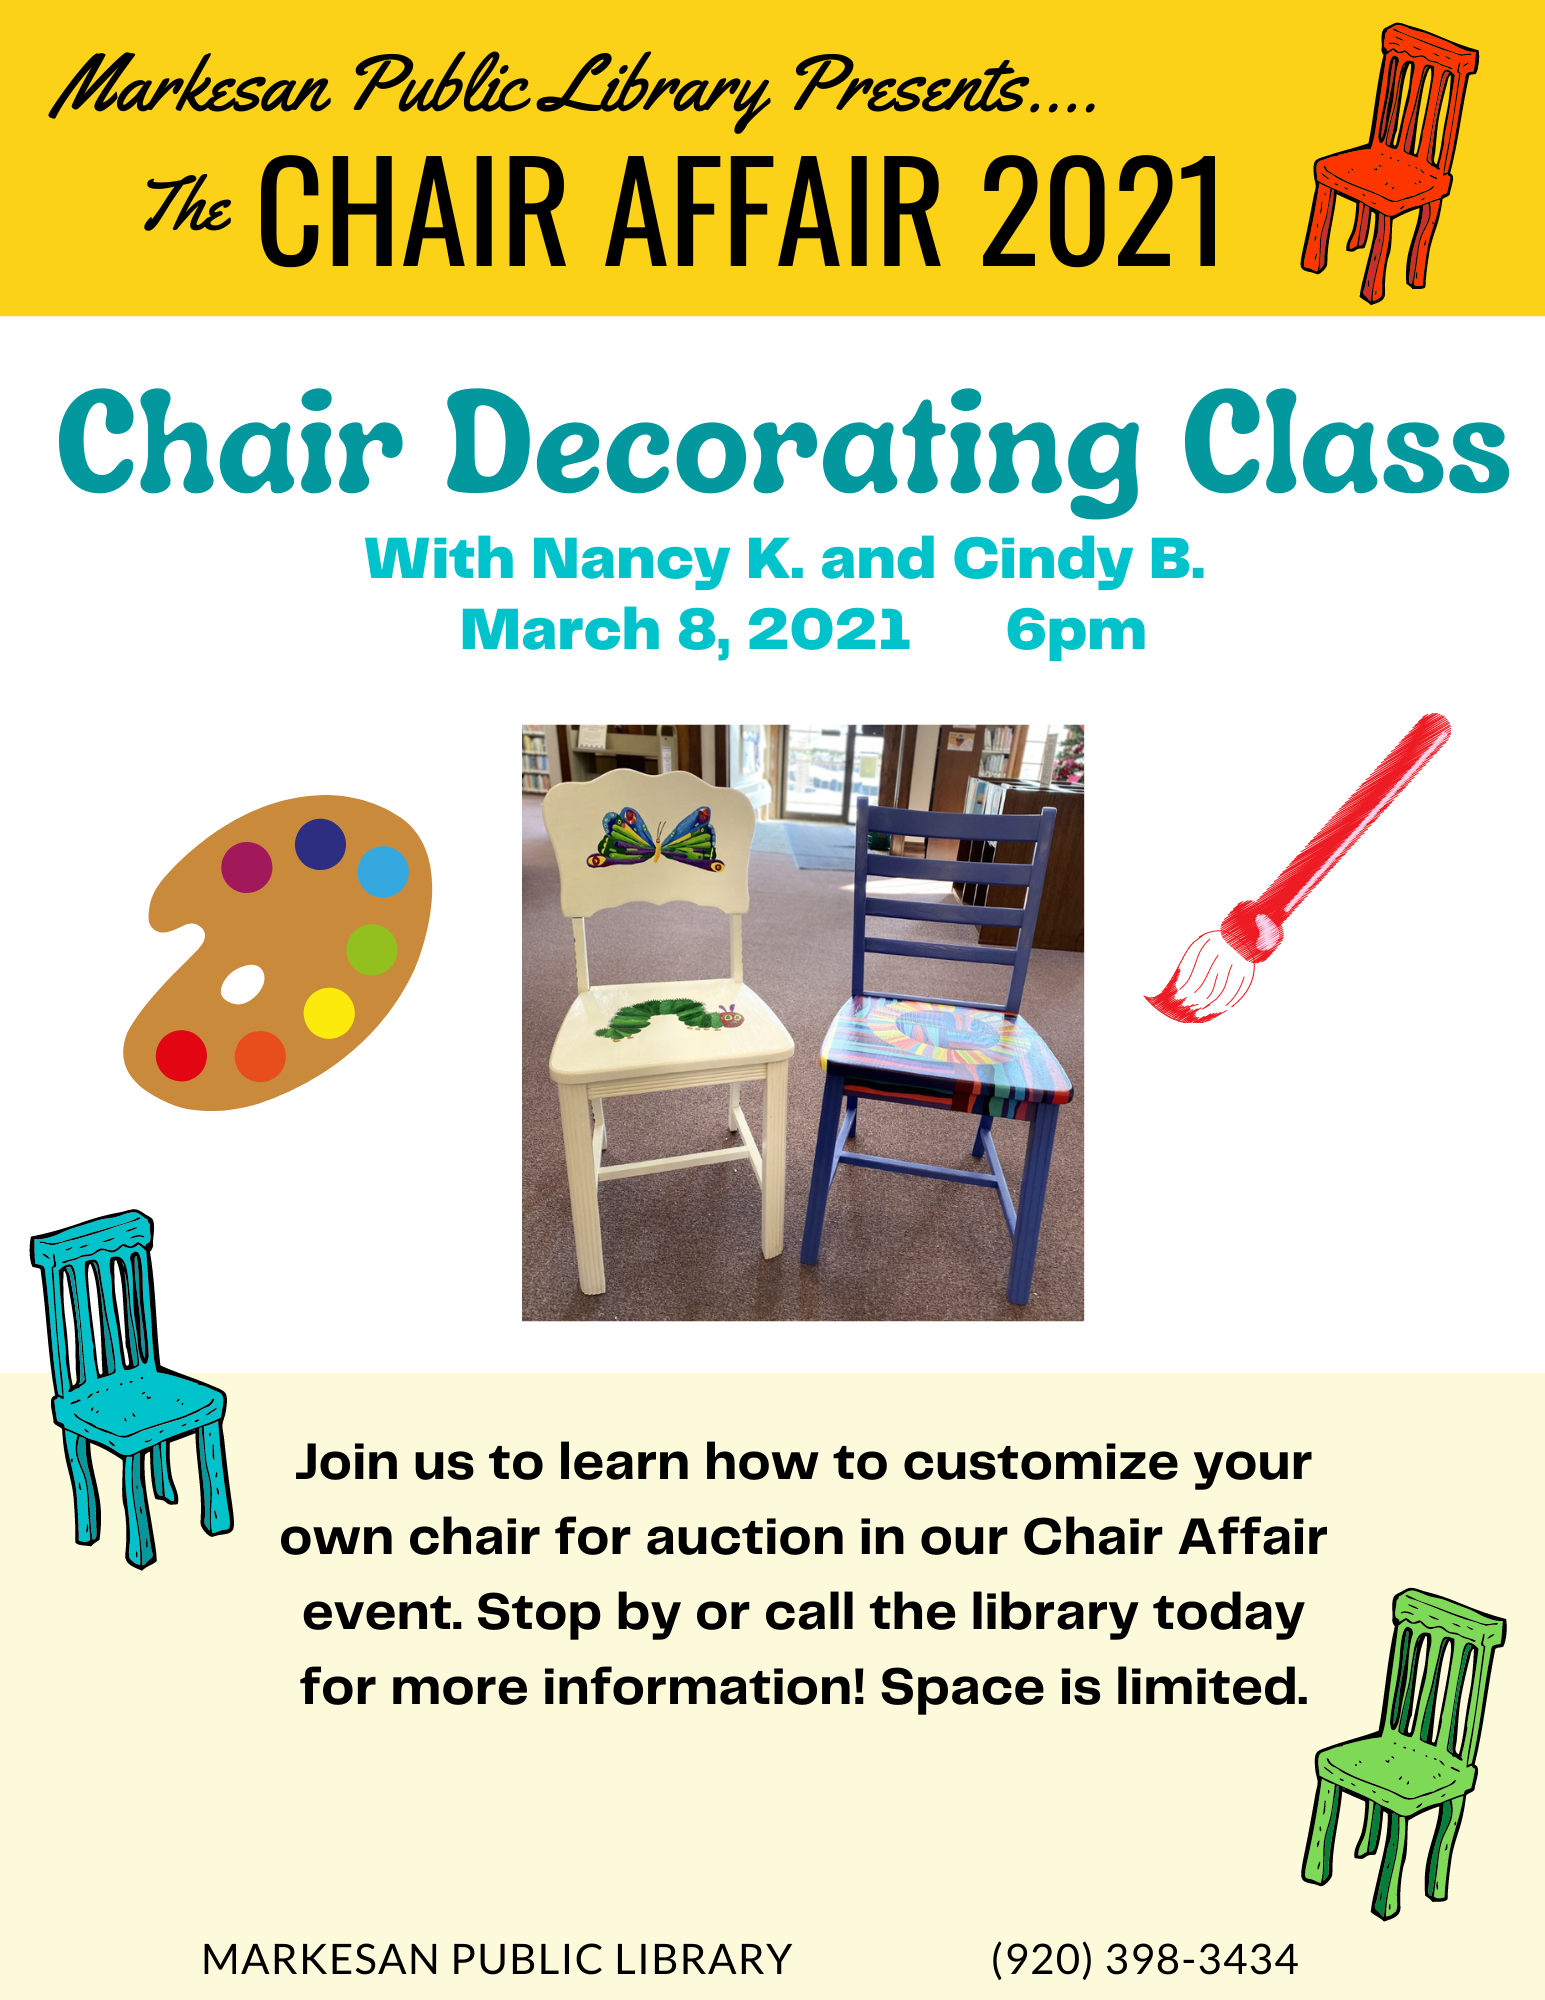 Chair Decorating Class on Monday, March 8 @ 6:00 pm